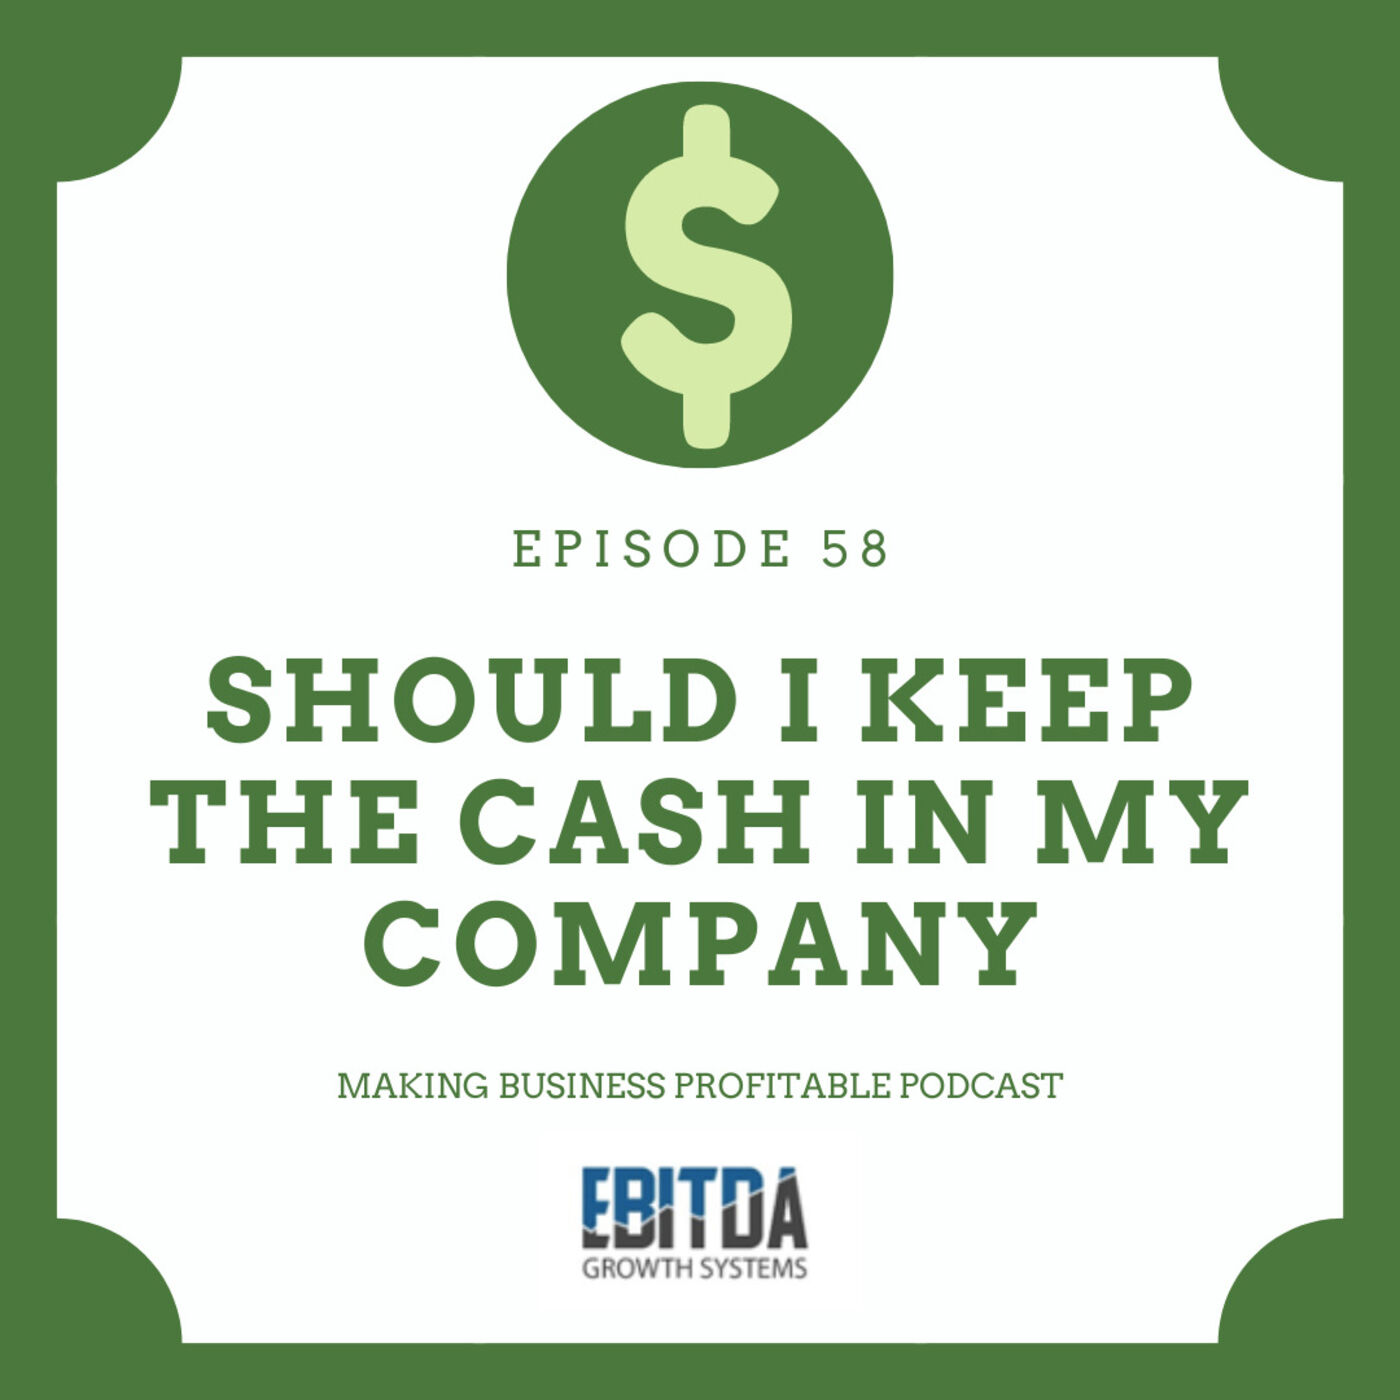 Episode 58 - Should I keep the Cash in my Company